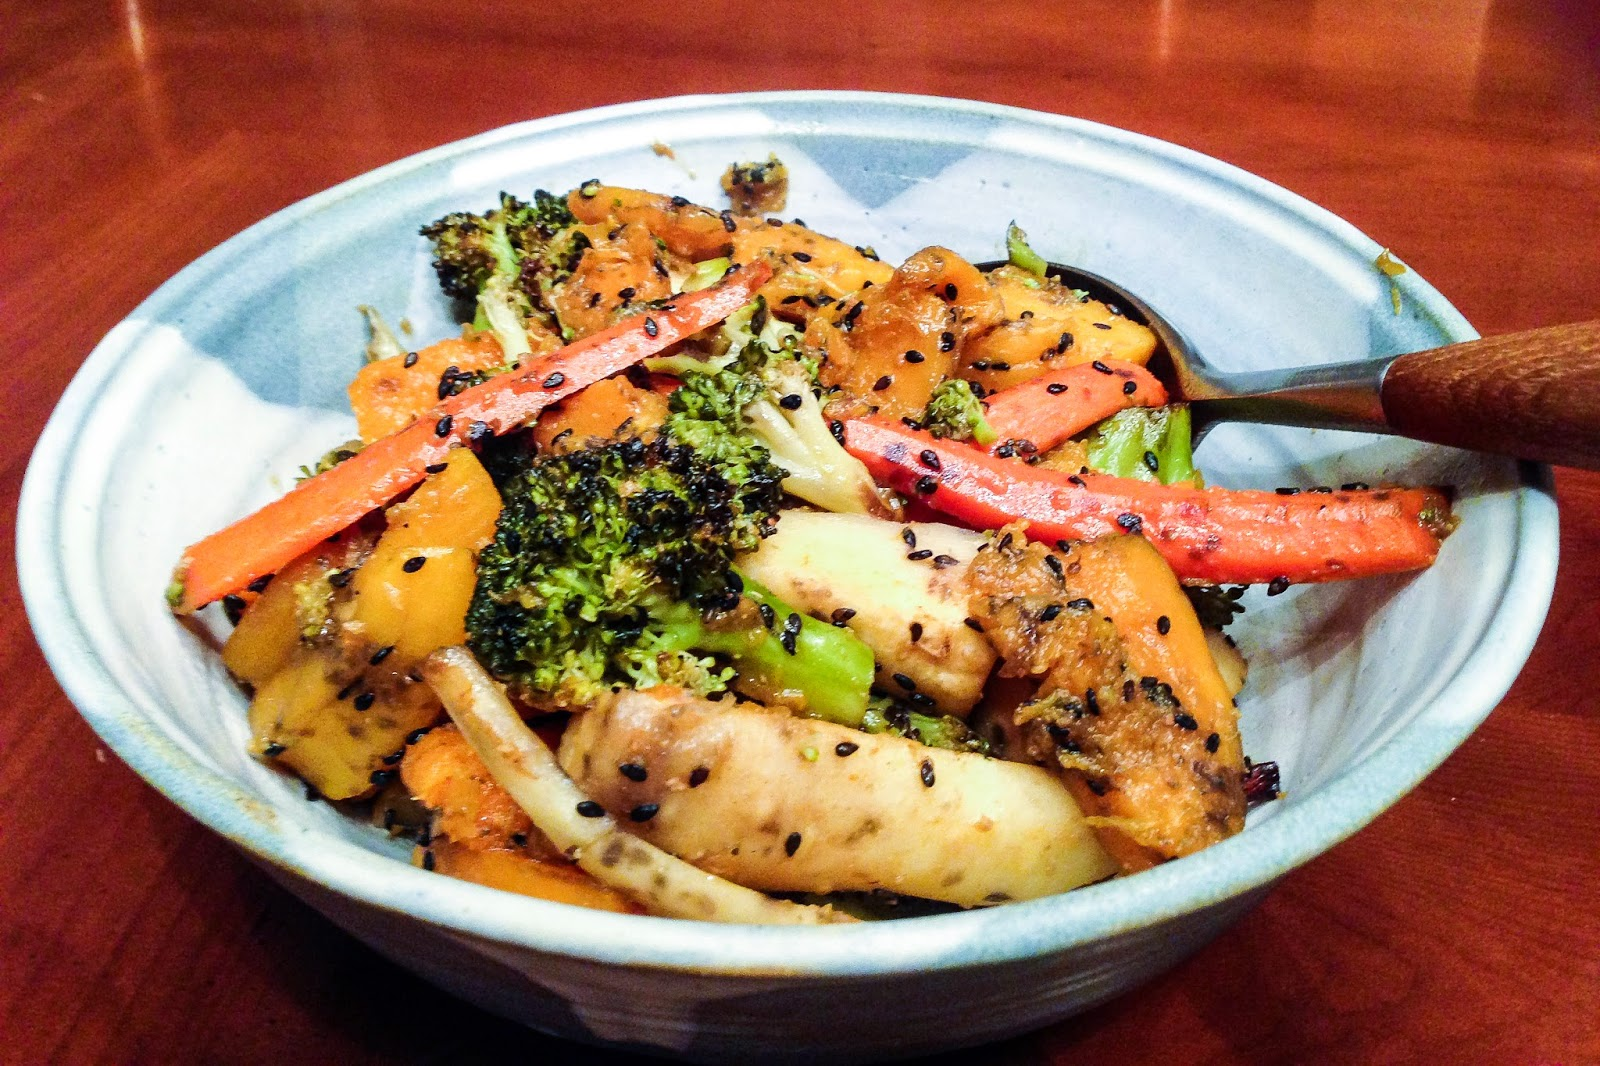 ... Roasted Winter Vegetables with Miso Dressing and Toasted Sesame Seeds